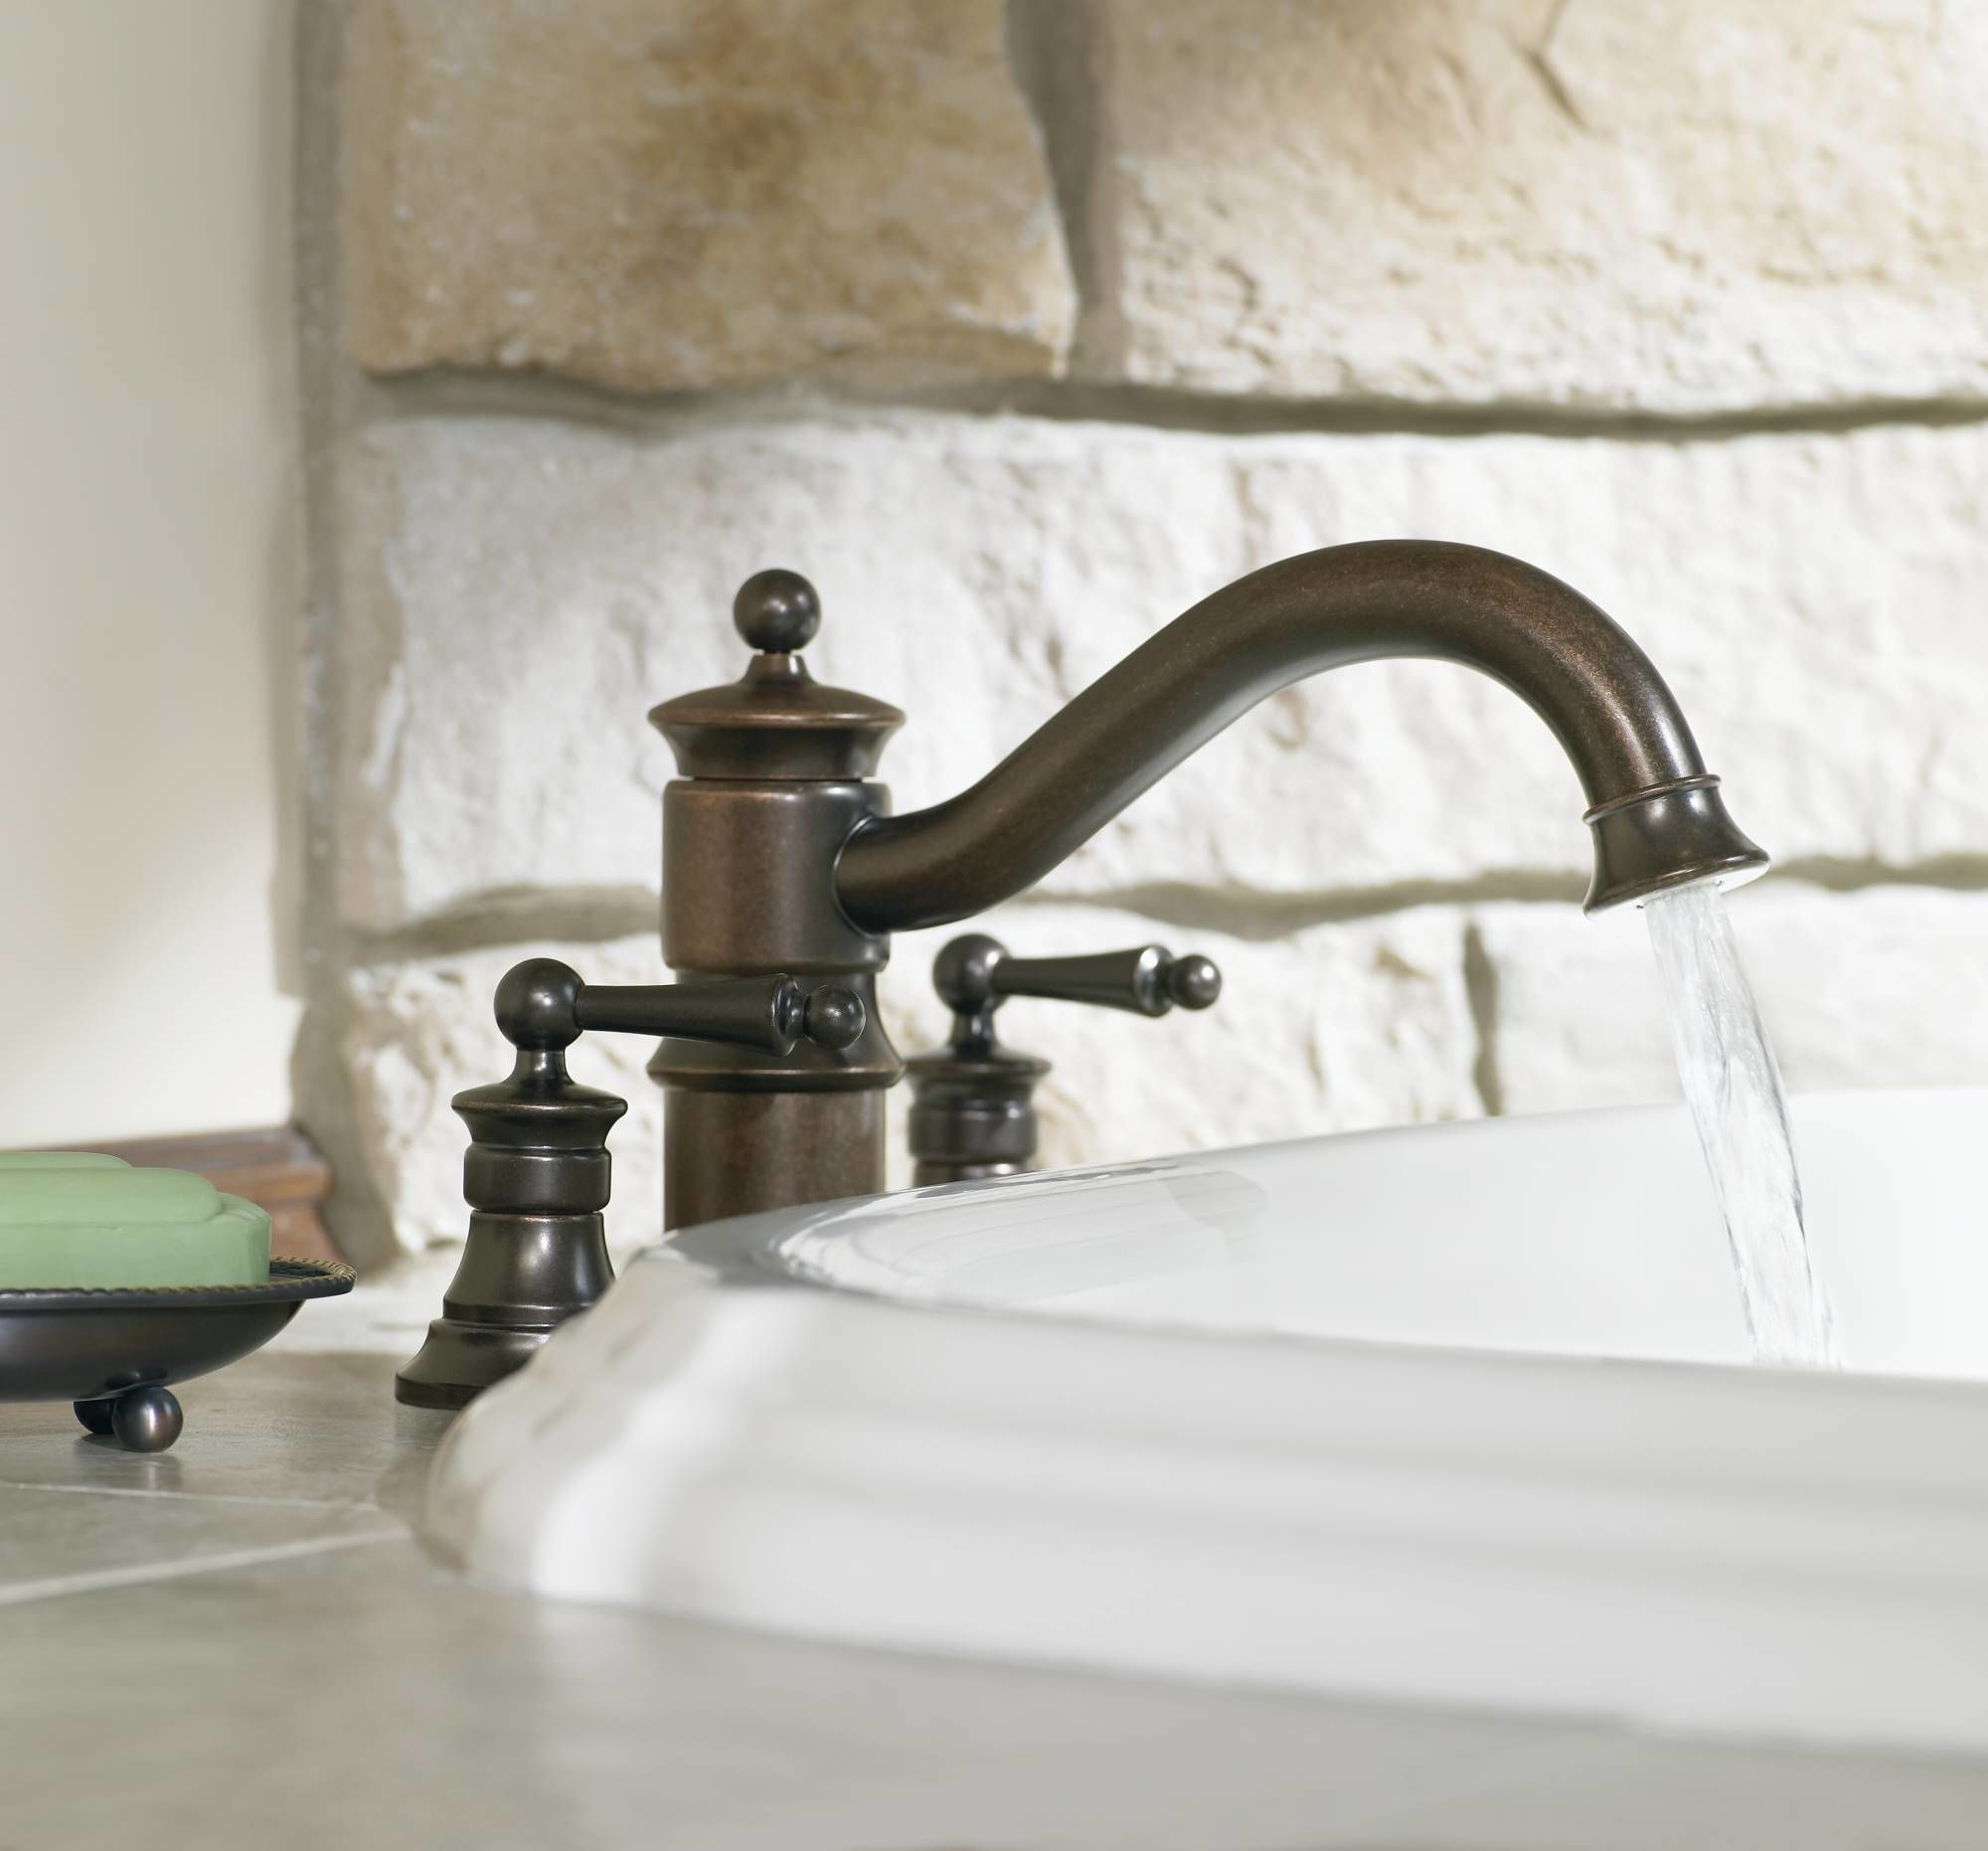 Roman Tub Faucets Moen Bathroom Faucet Pricewatch Reviews